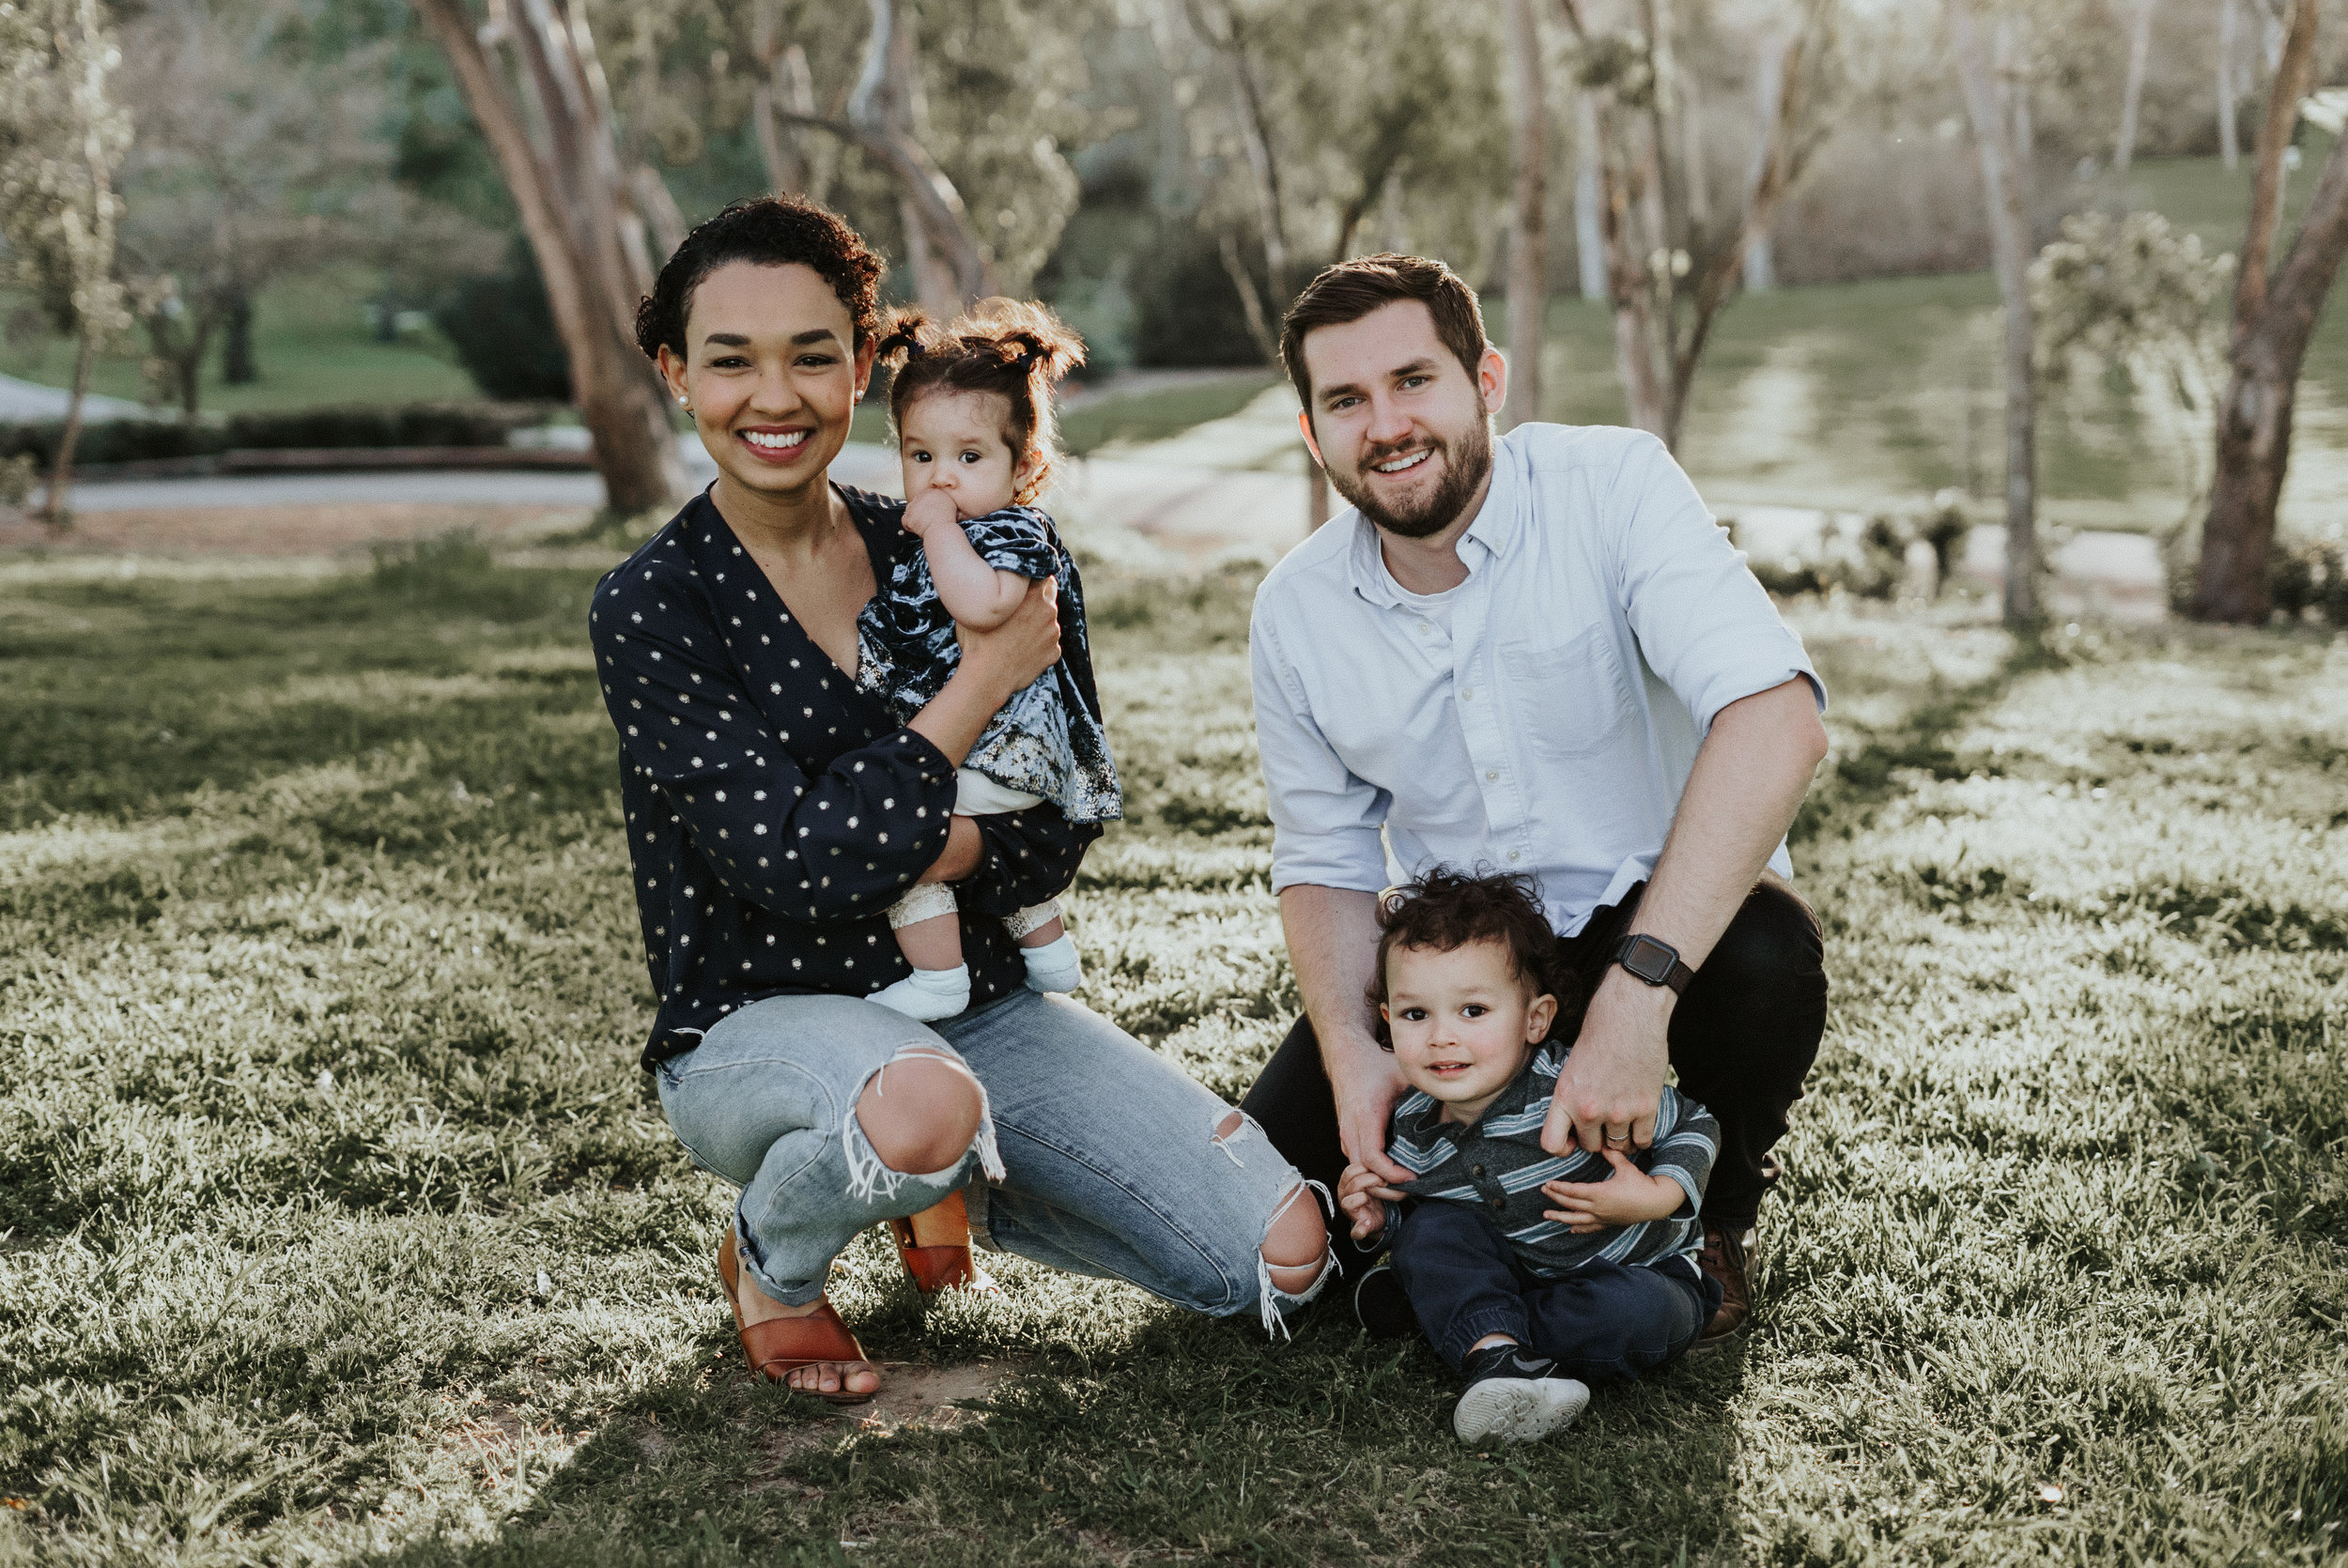 Hey there! I'm Mia. i'm a wife and mom. i'm here to teach you what i learned to overcome severe postpartum depression + anxiety and to thrive in motherhood. -